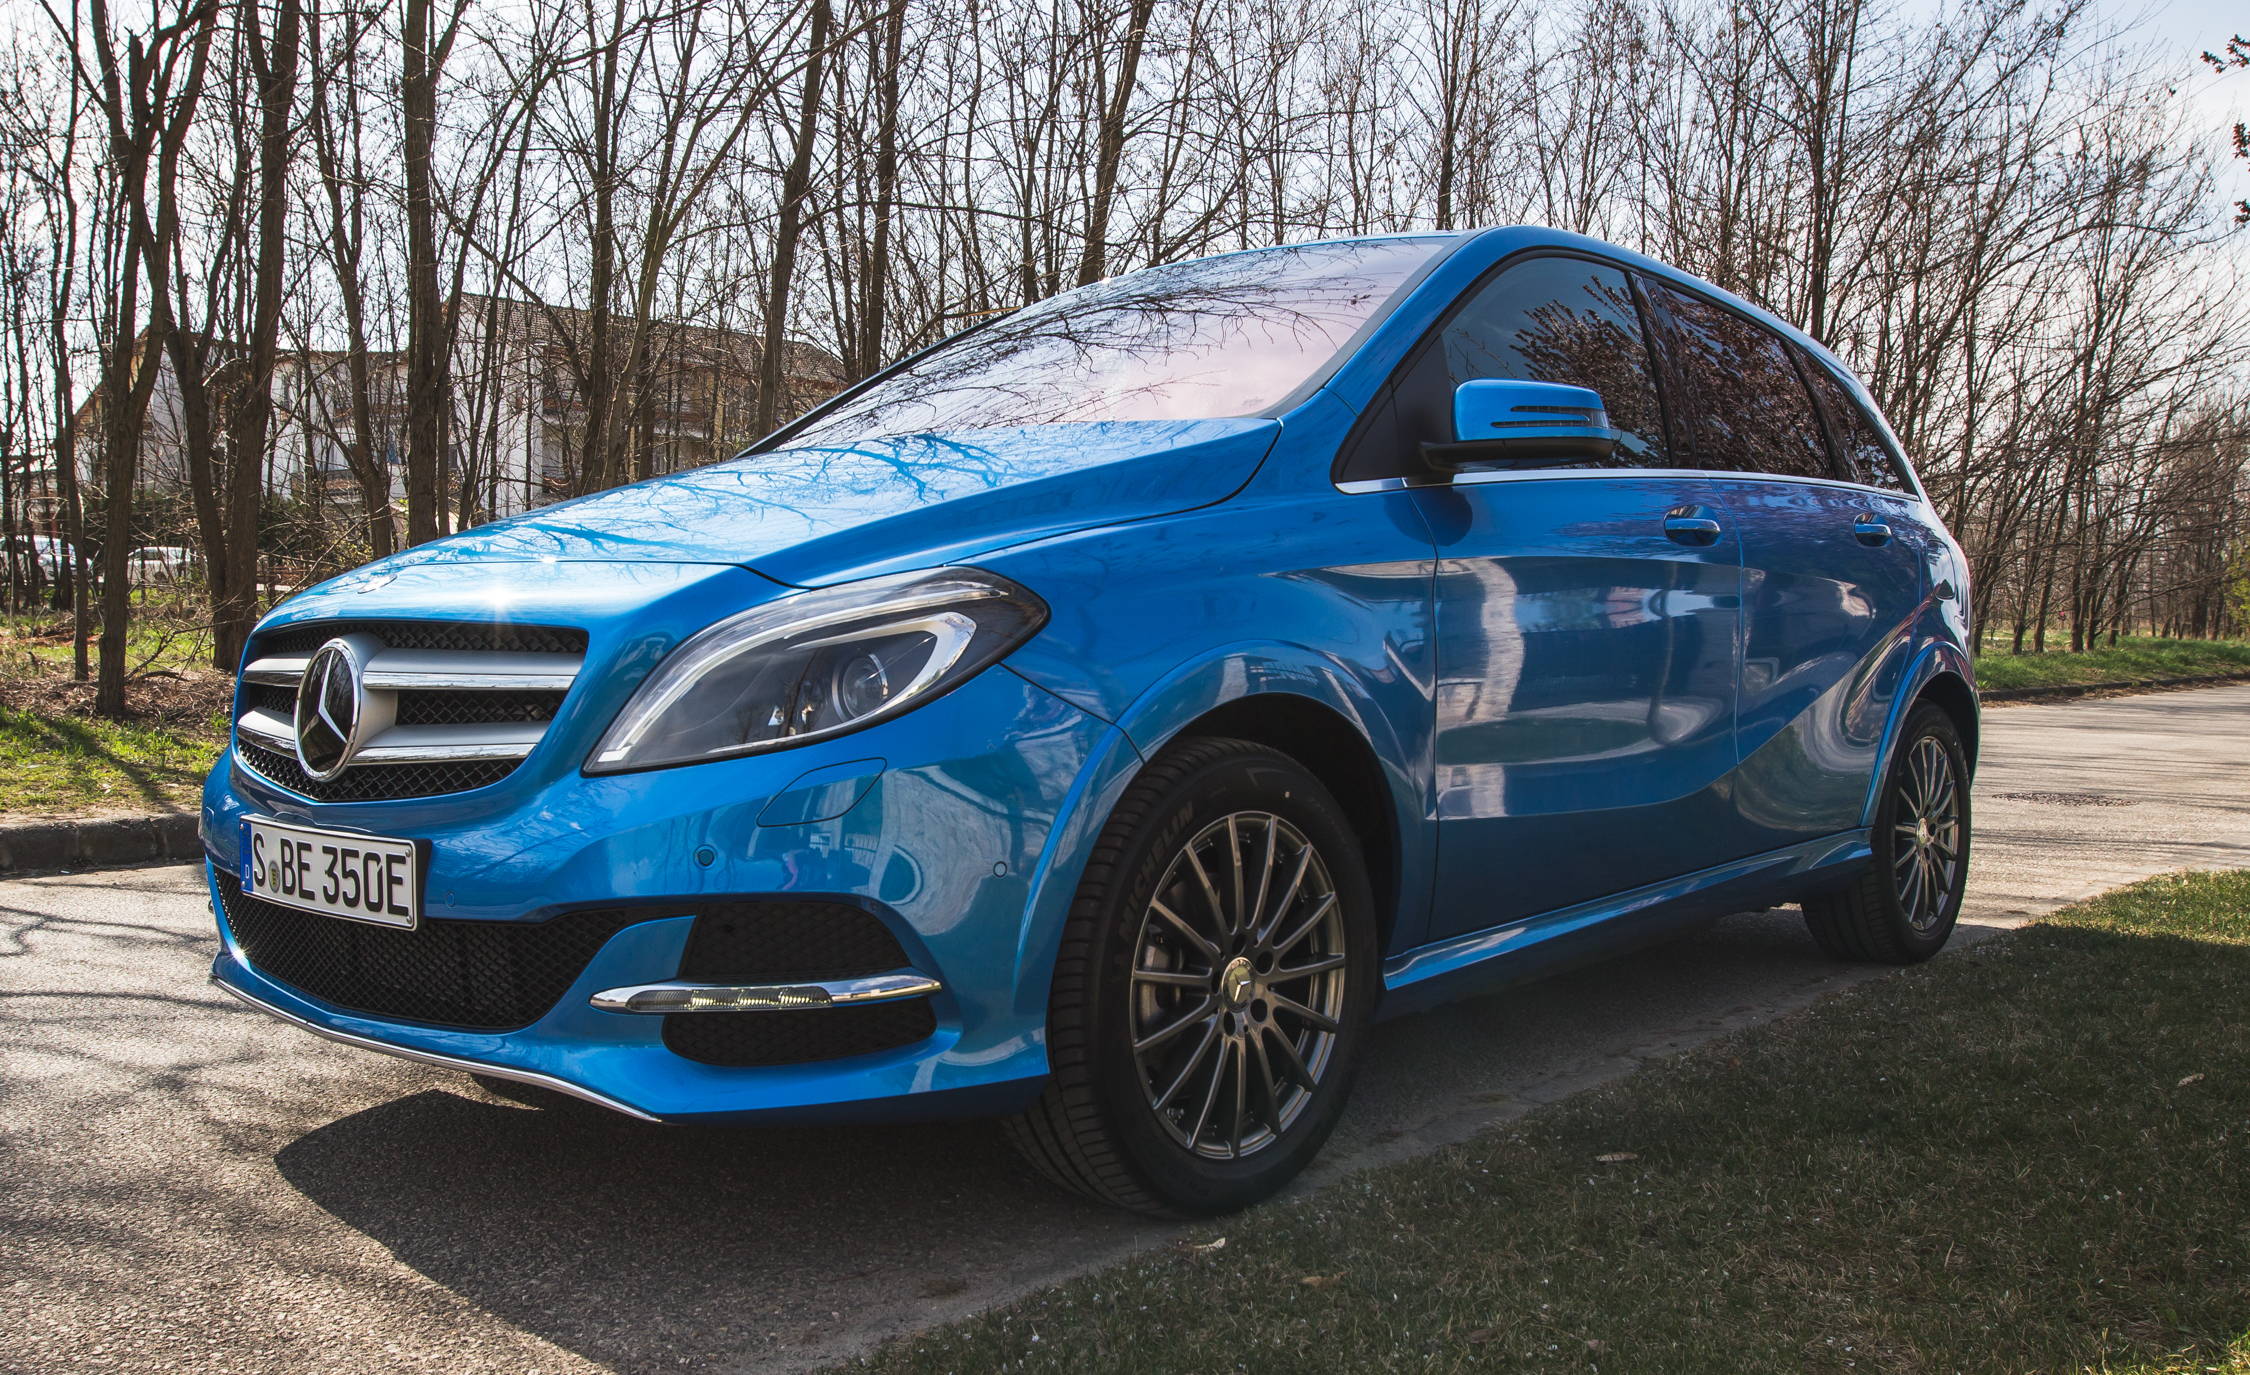 2017 Mercedes Benz B Class EV Exterior View Front And Side (Photo 3 of 24)